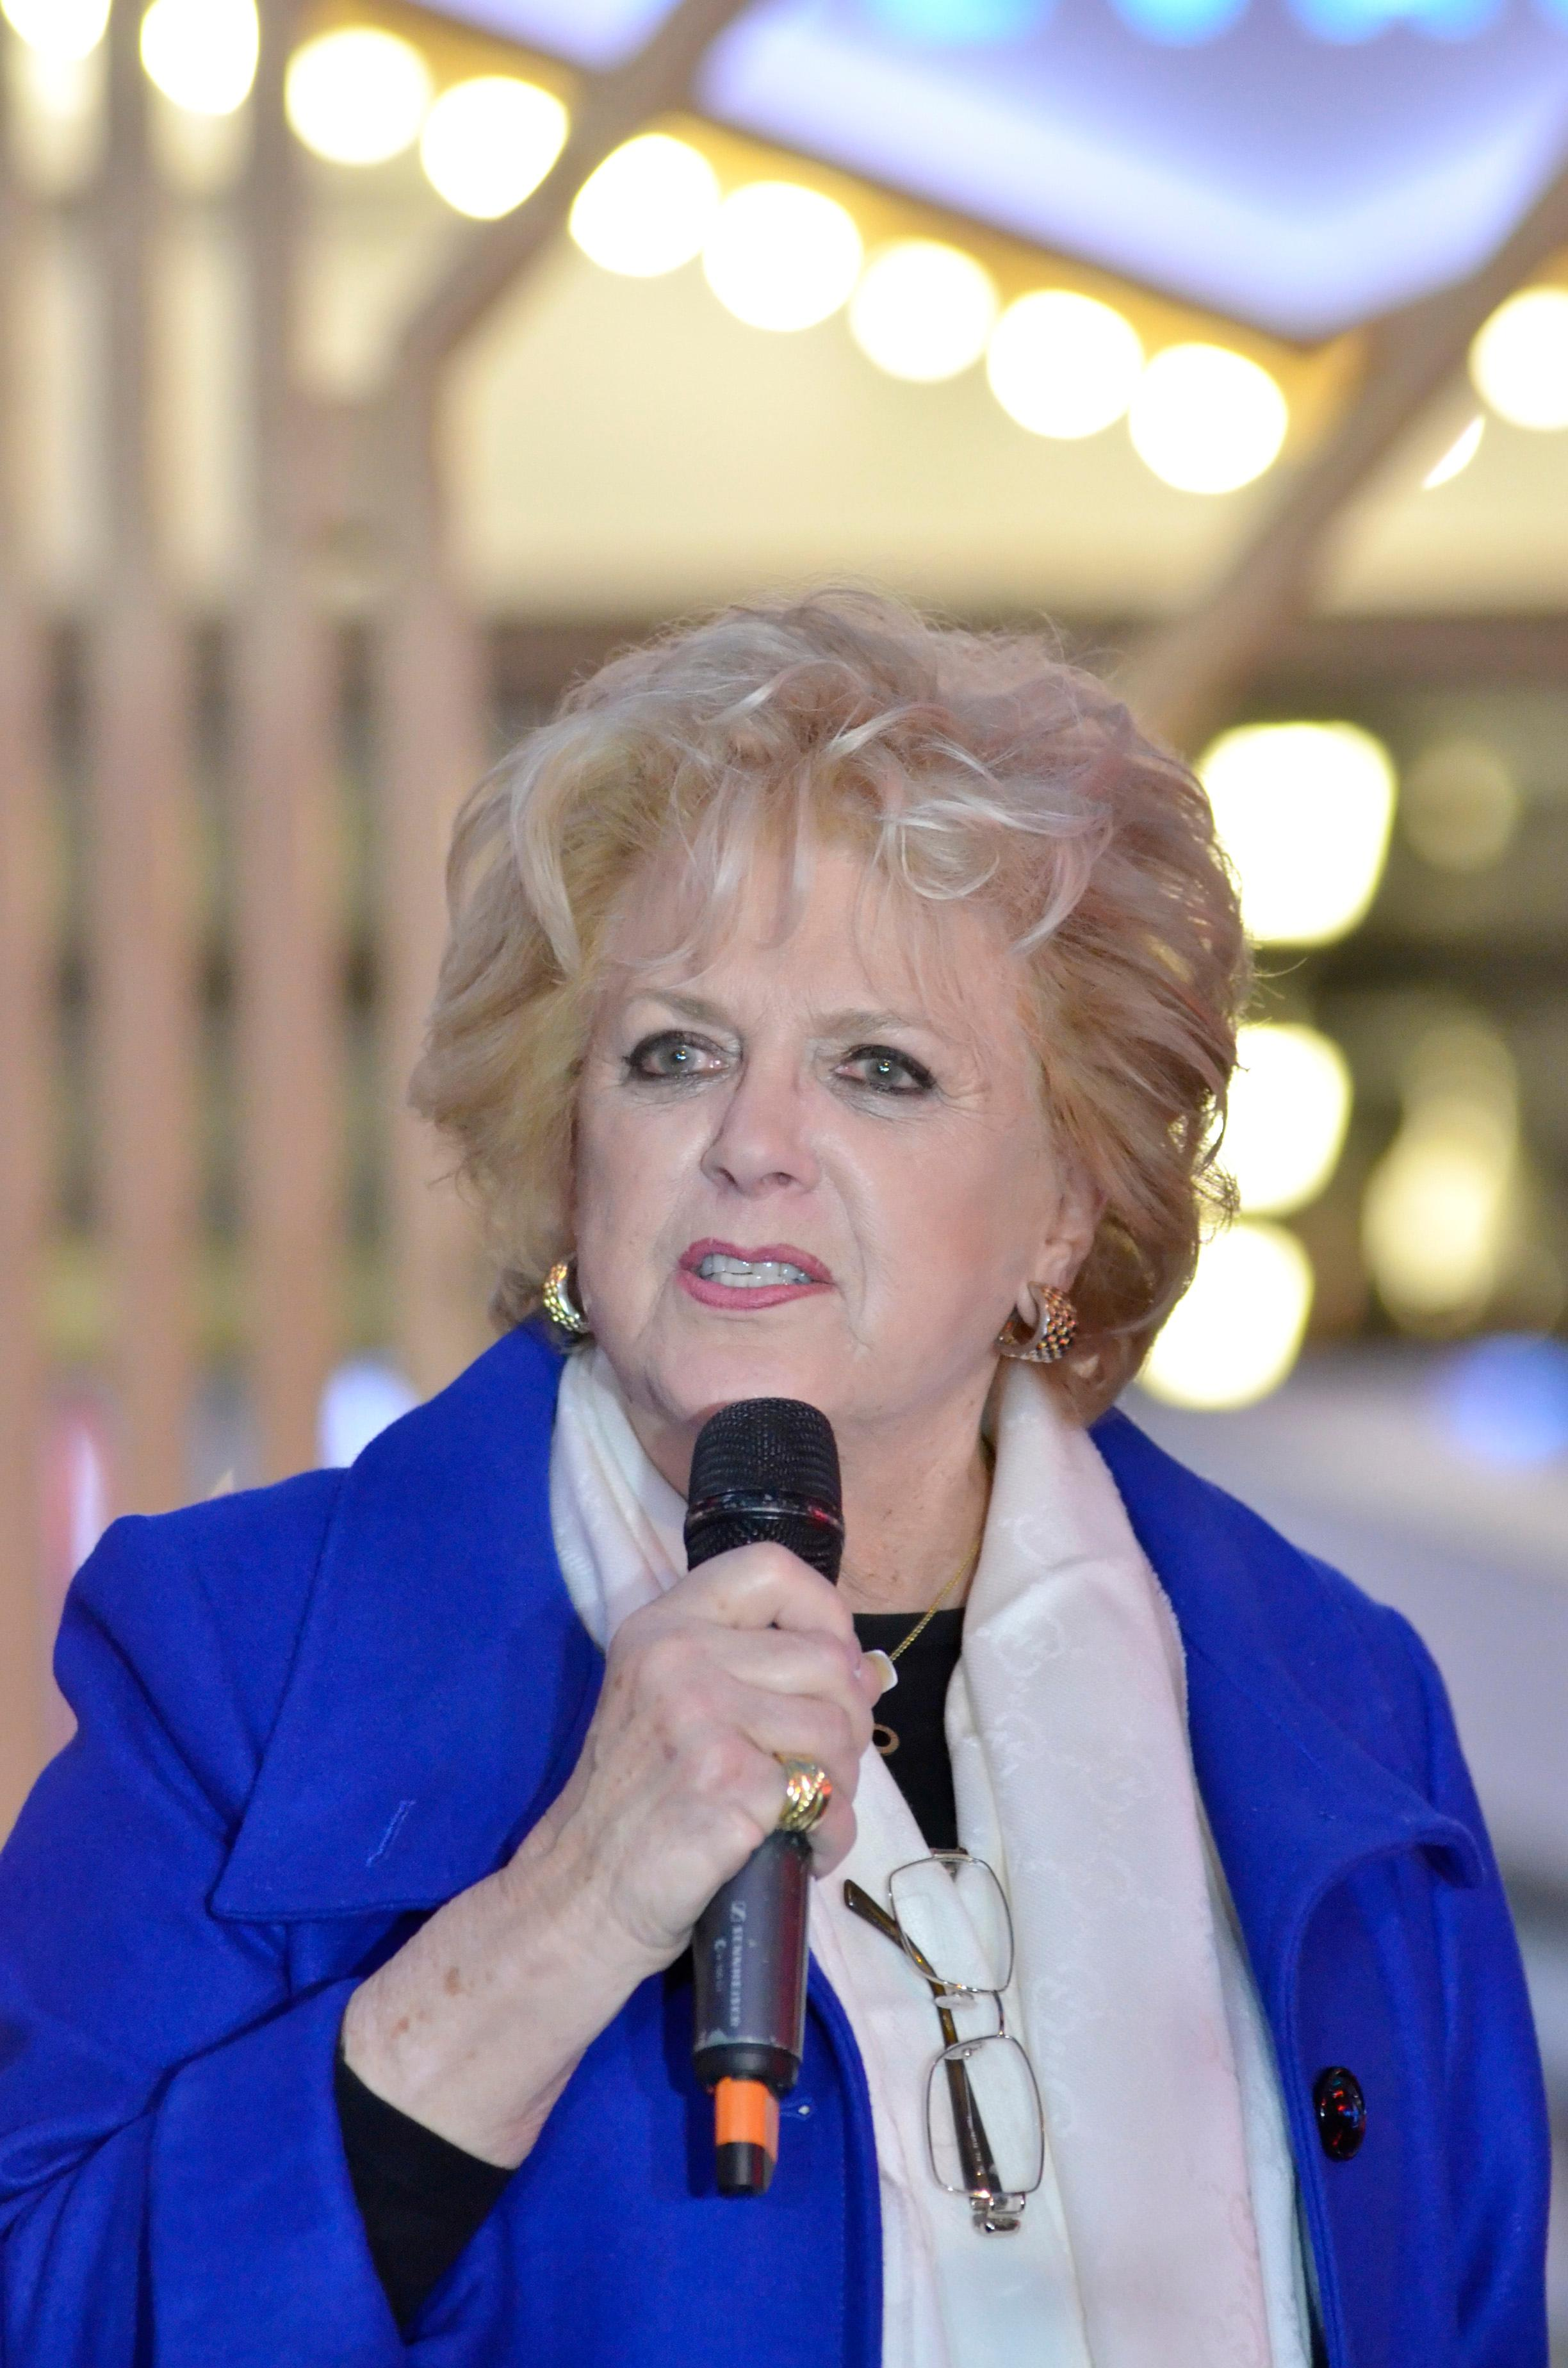 Las Vegas Mayor Carolyn Goodman speaks during a menorah lighting ceremony. Rabbi Shea Harlig, of the Chabad Jewish Center of Southern Nevada, Patrick Hughes, President and CEO of Fremont Street Experience, and Jonathan Jossel, CEO of the Plaza hotel-casino, were on hand for the first night of Hanukkah which was marked with the lighting of a 20-foot Grand Menorah on Fremont Street in downtown Las Vegas on Tuesday, Dec. 12, 2017. CREDIT: Bill Hughes/Las Vegas News Bureau